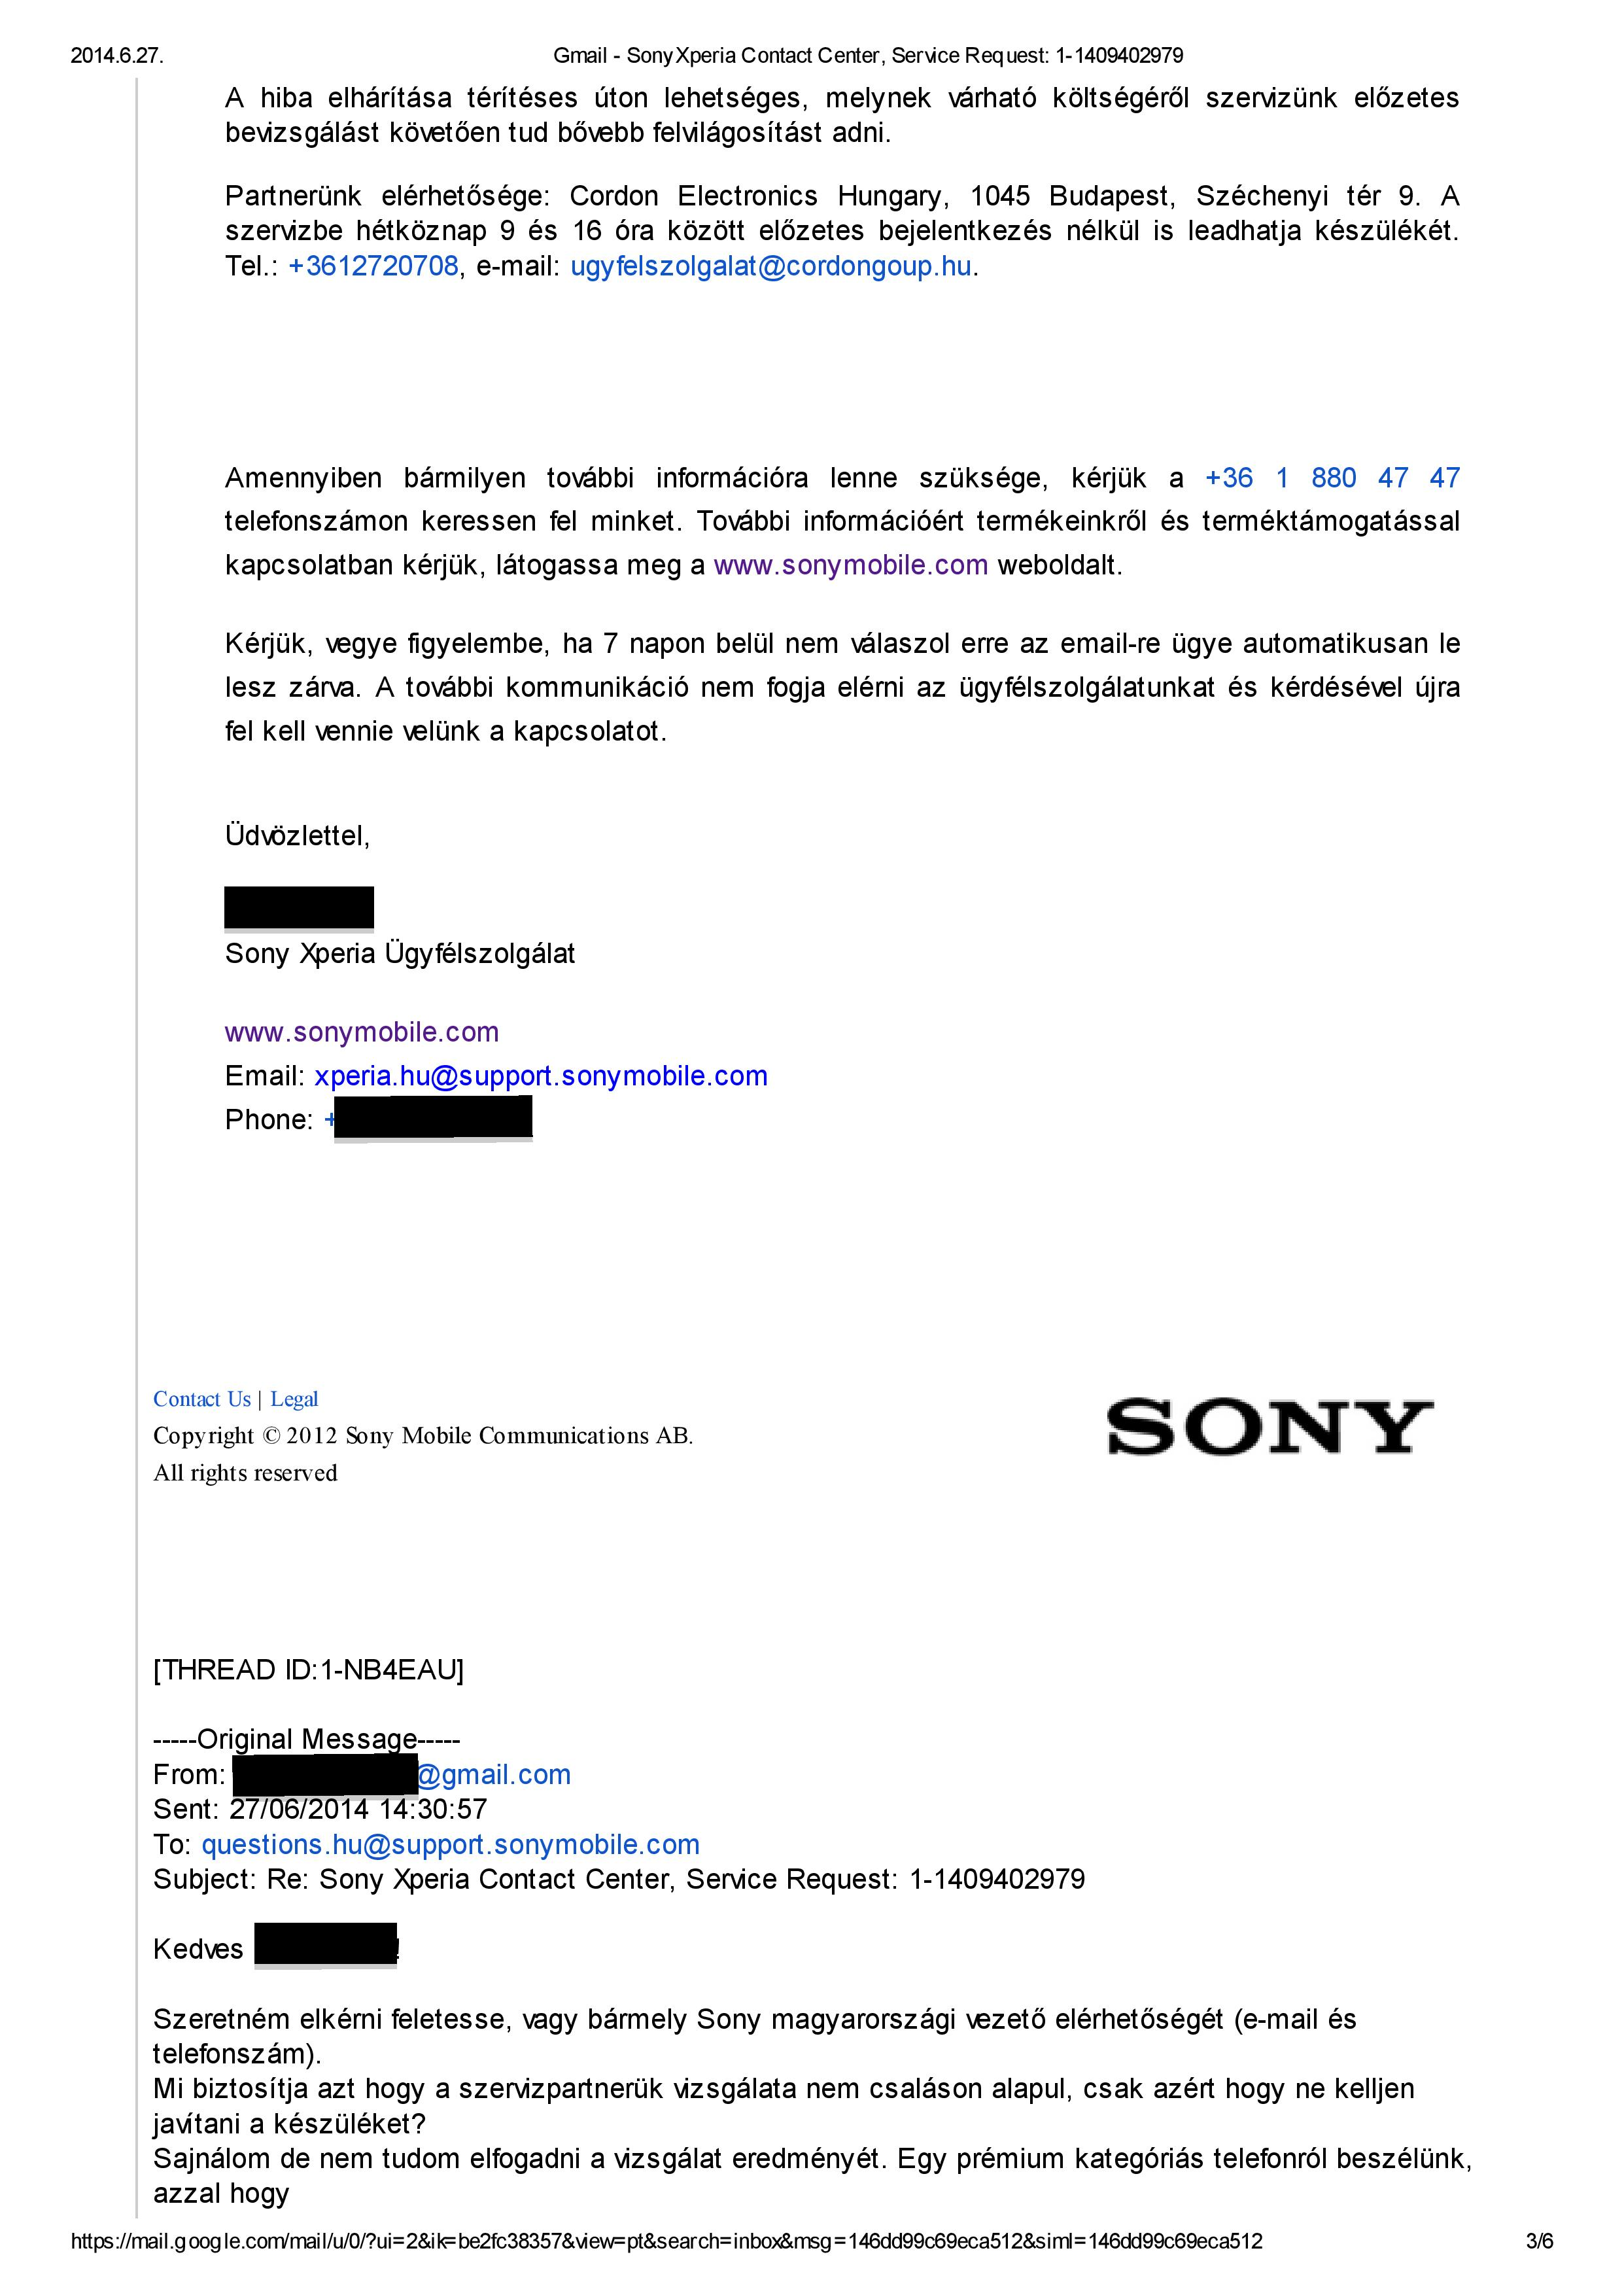 Gmail - Sony Xperia Contact Center, Service Request_ 1-1409402979-page-003 (1).jpg